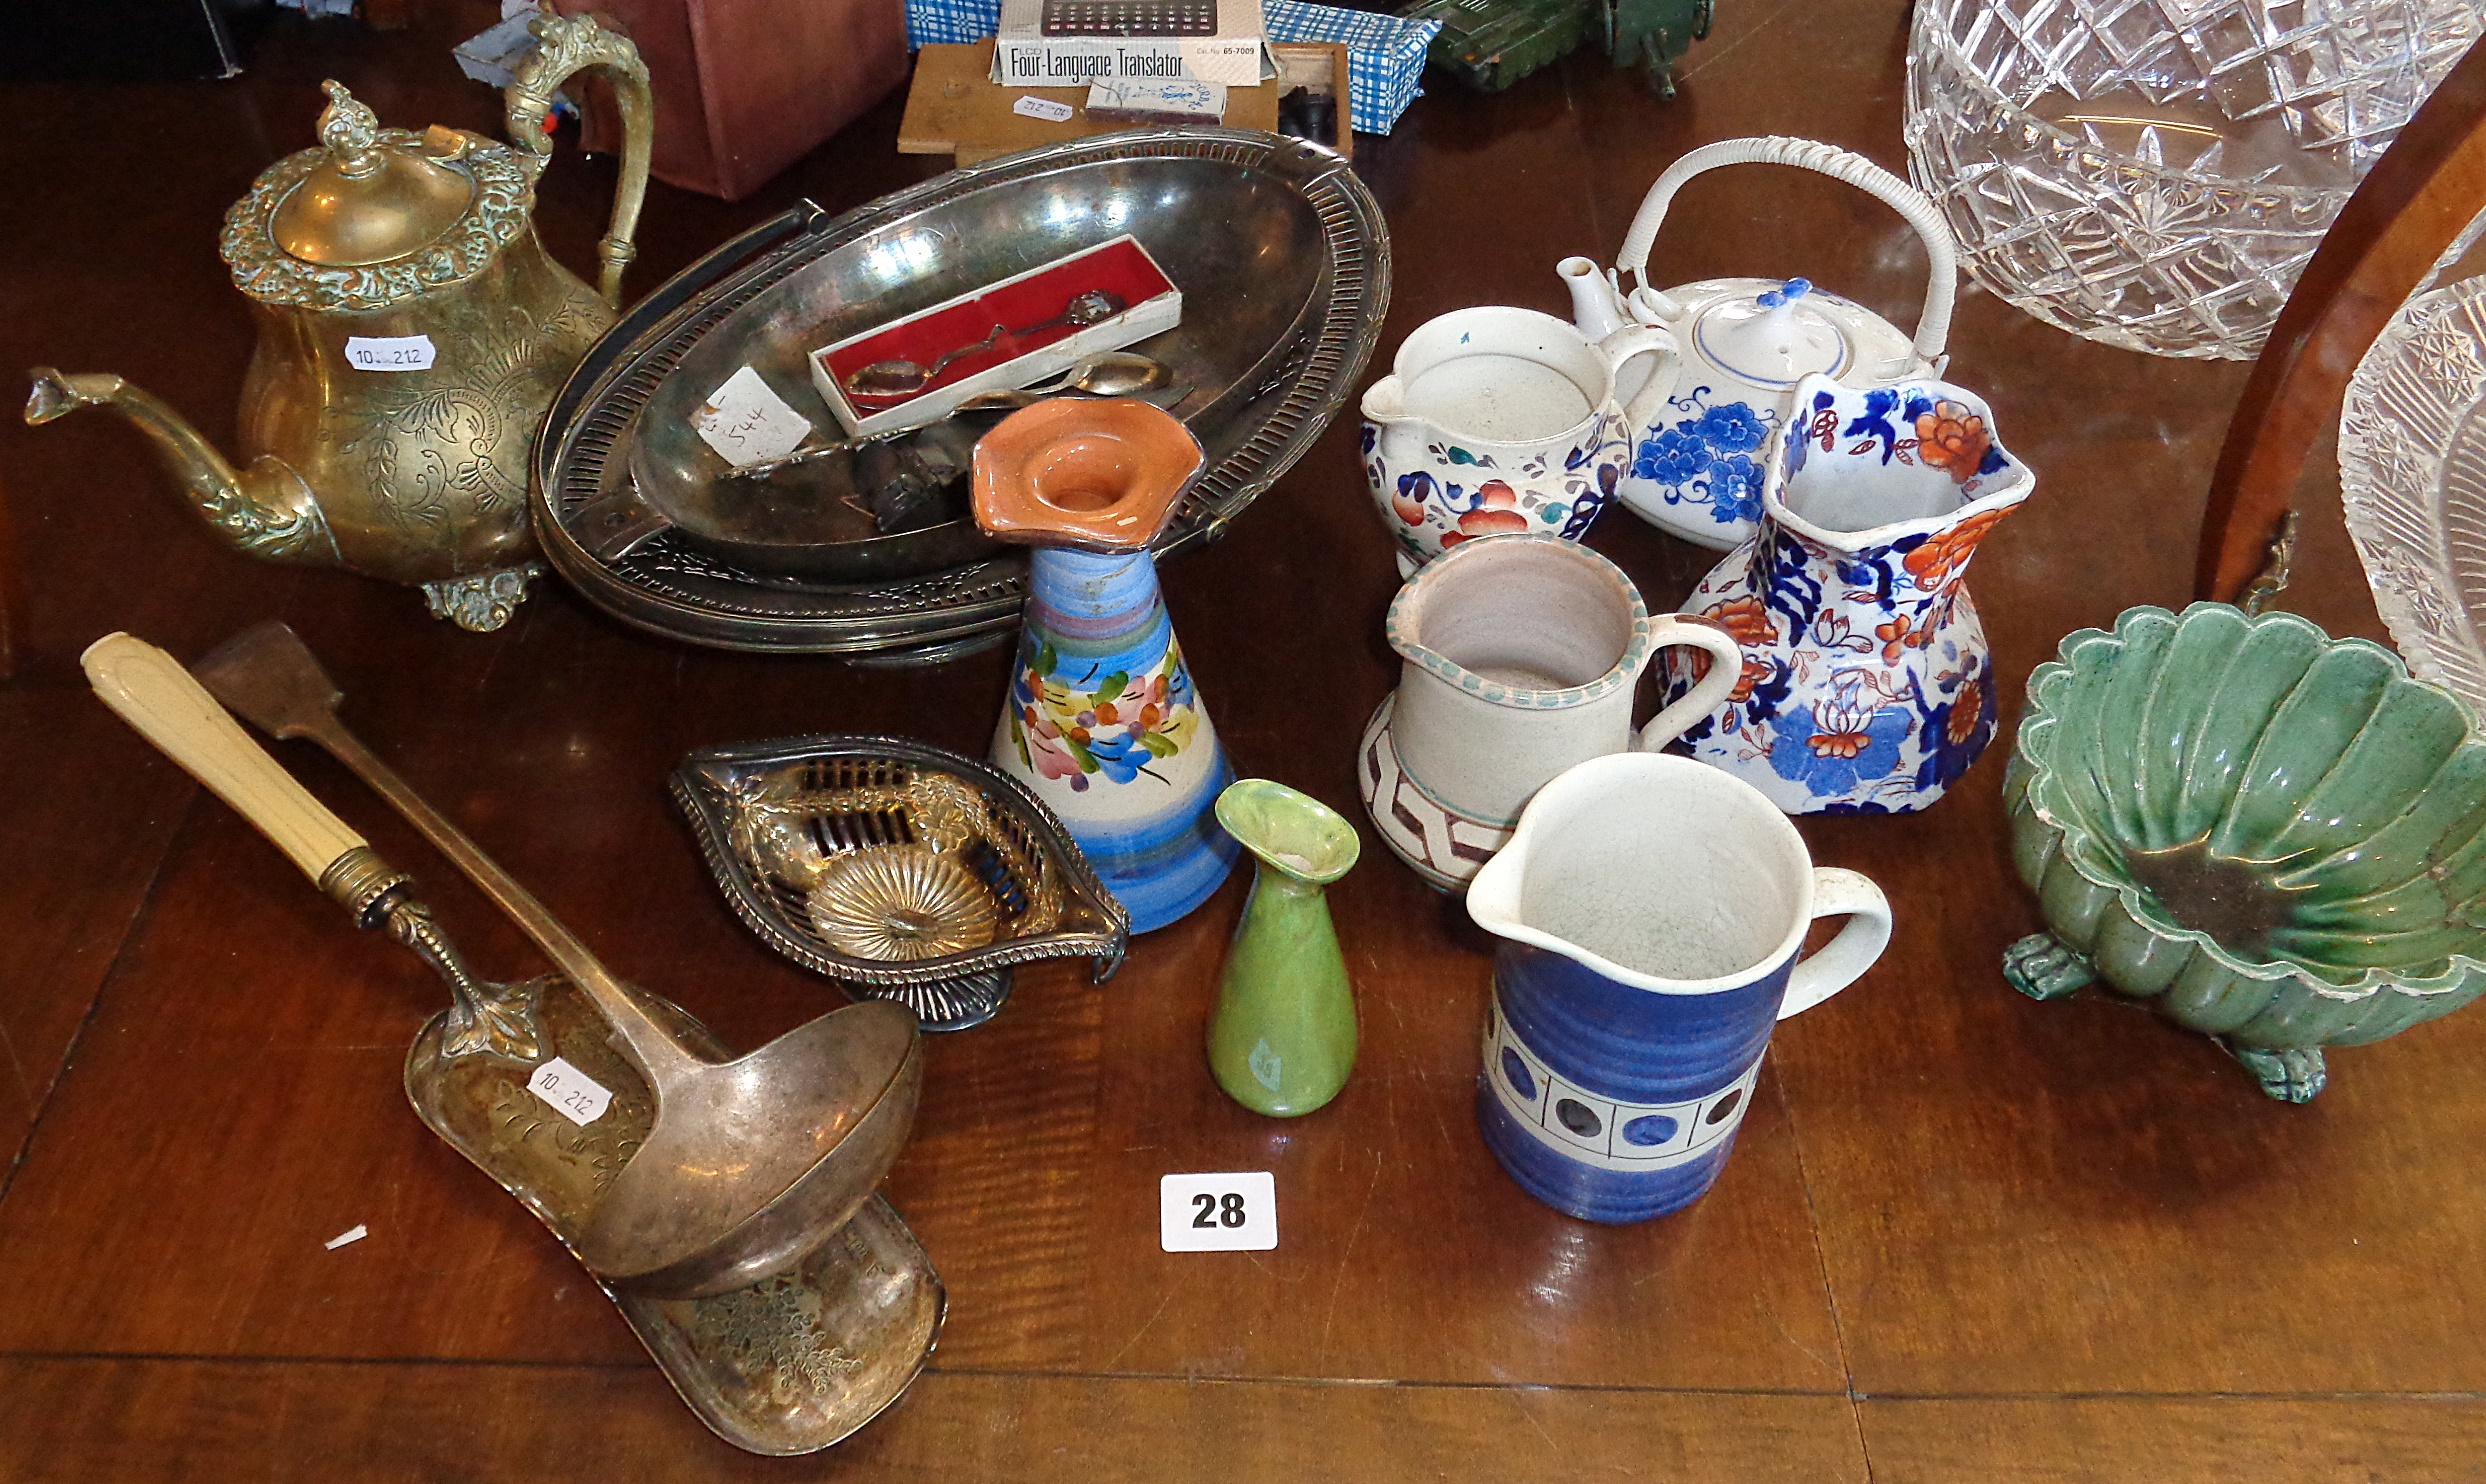 Lot 28 - Four various jugs and vases and silver plated ladle, baskets, etc.